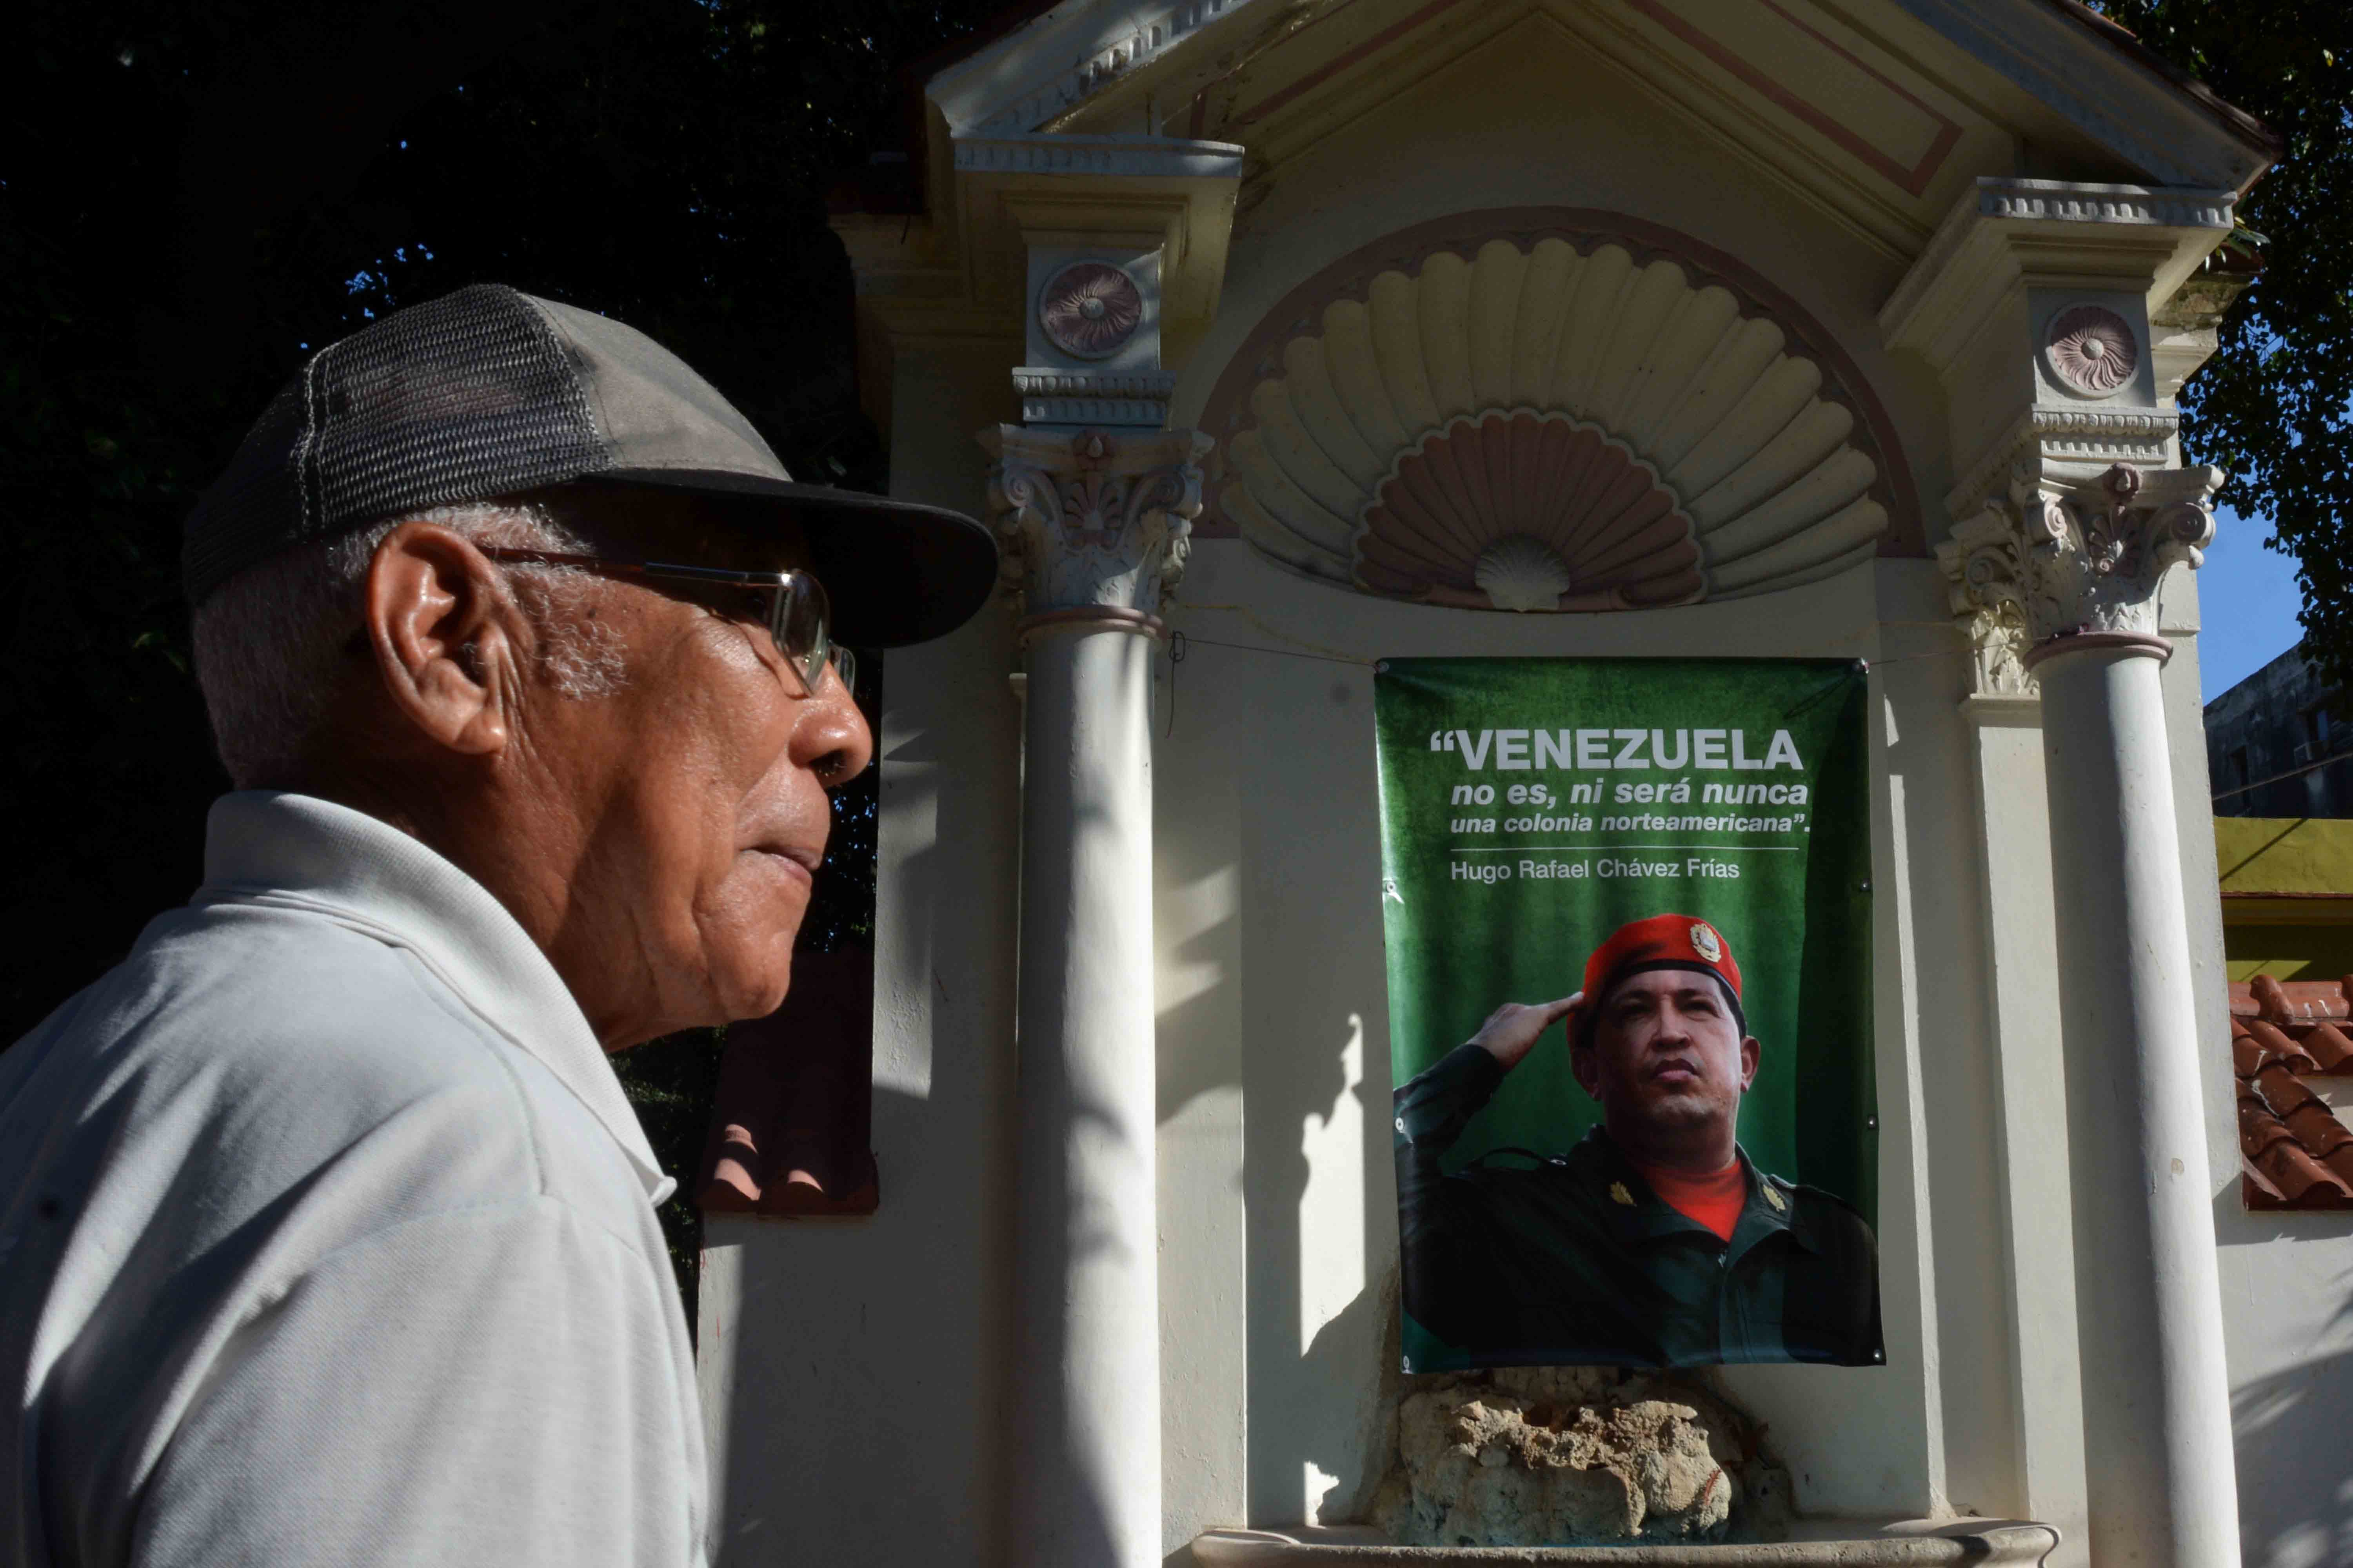 Cubans pay homage to Chavez, ratify solidarity with Venezuela